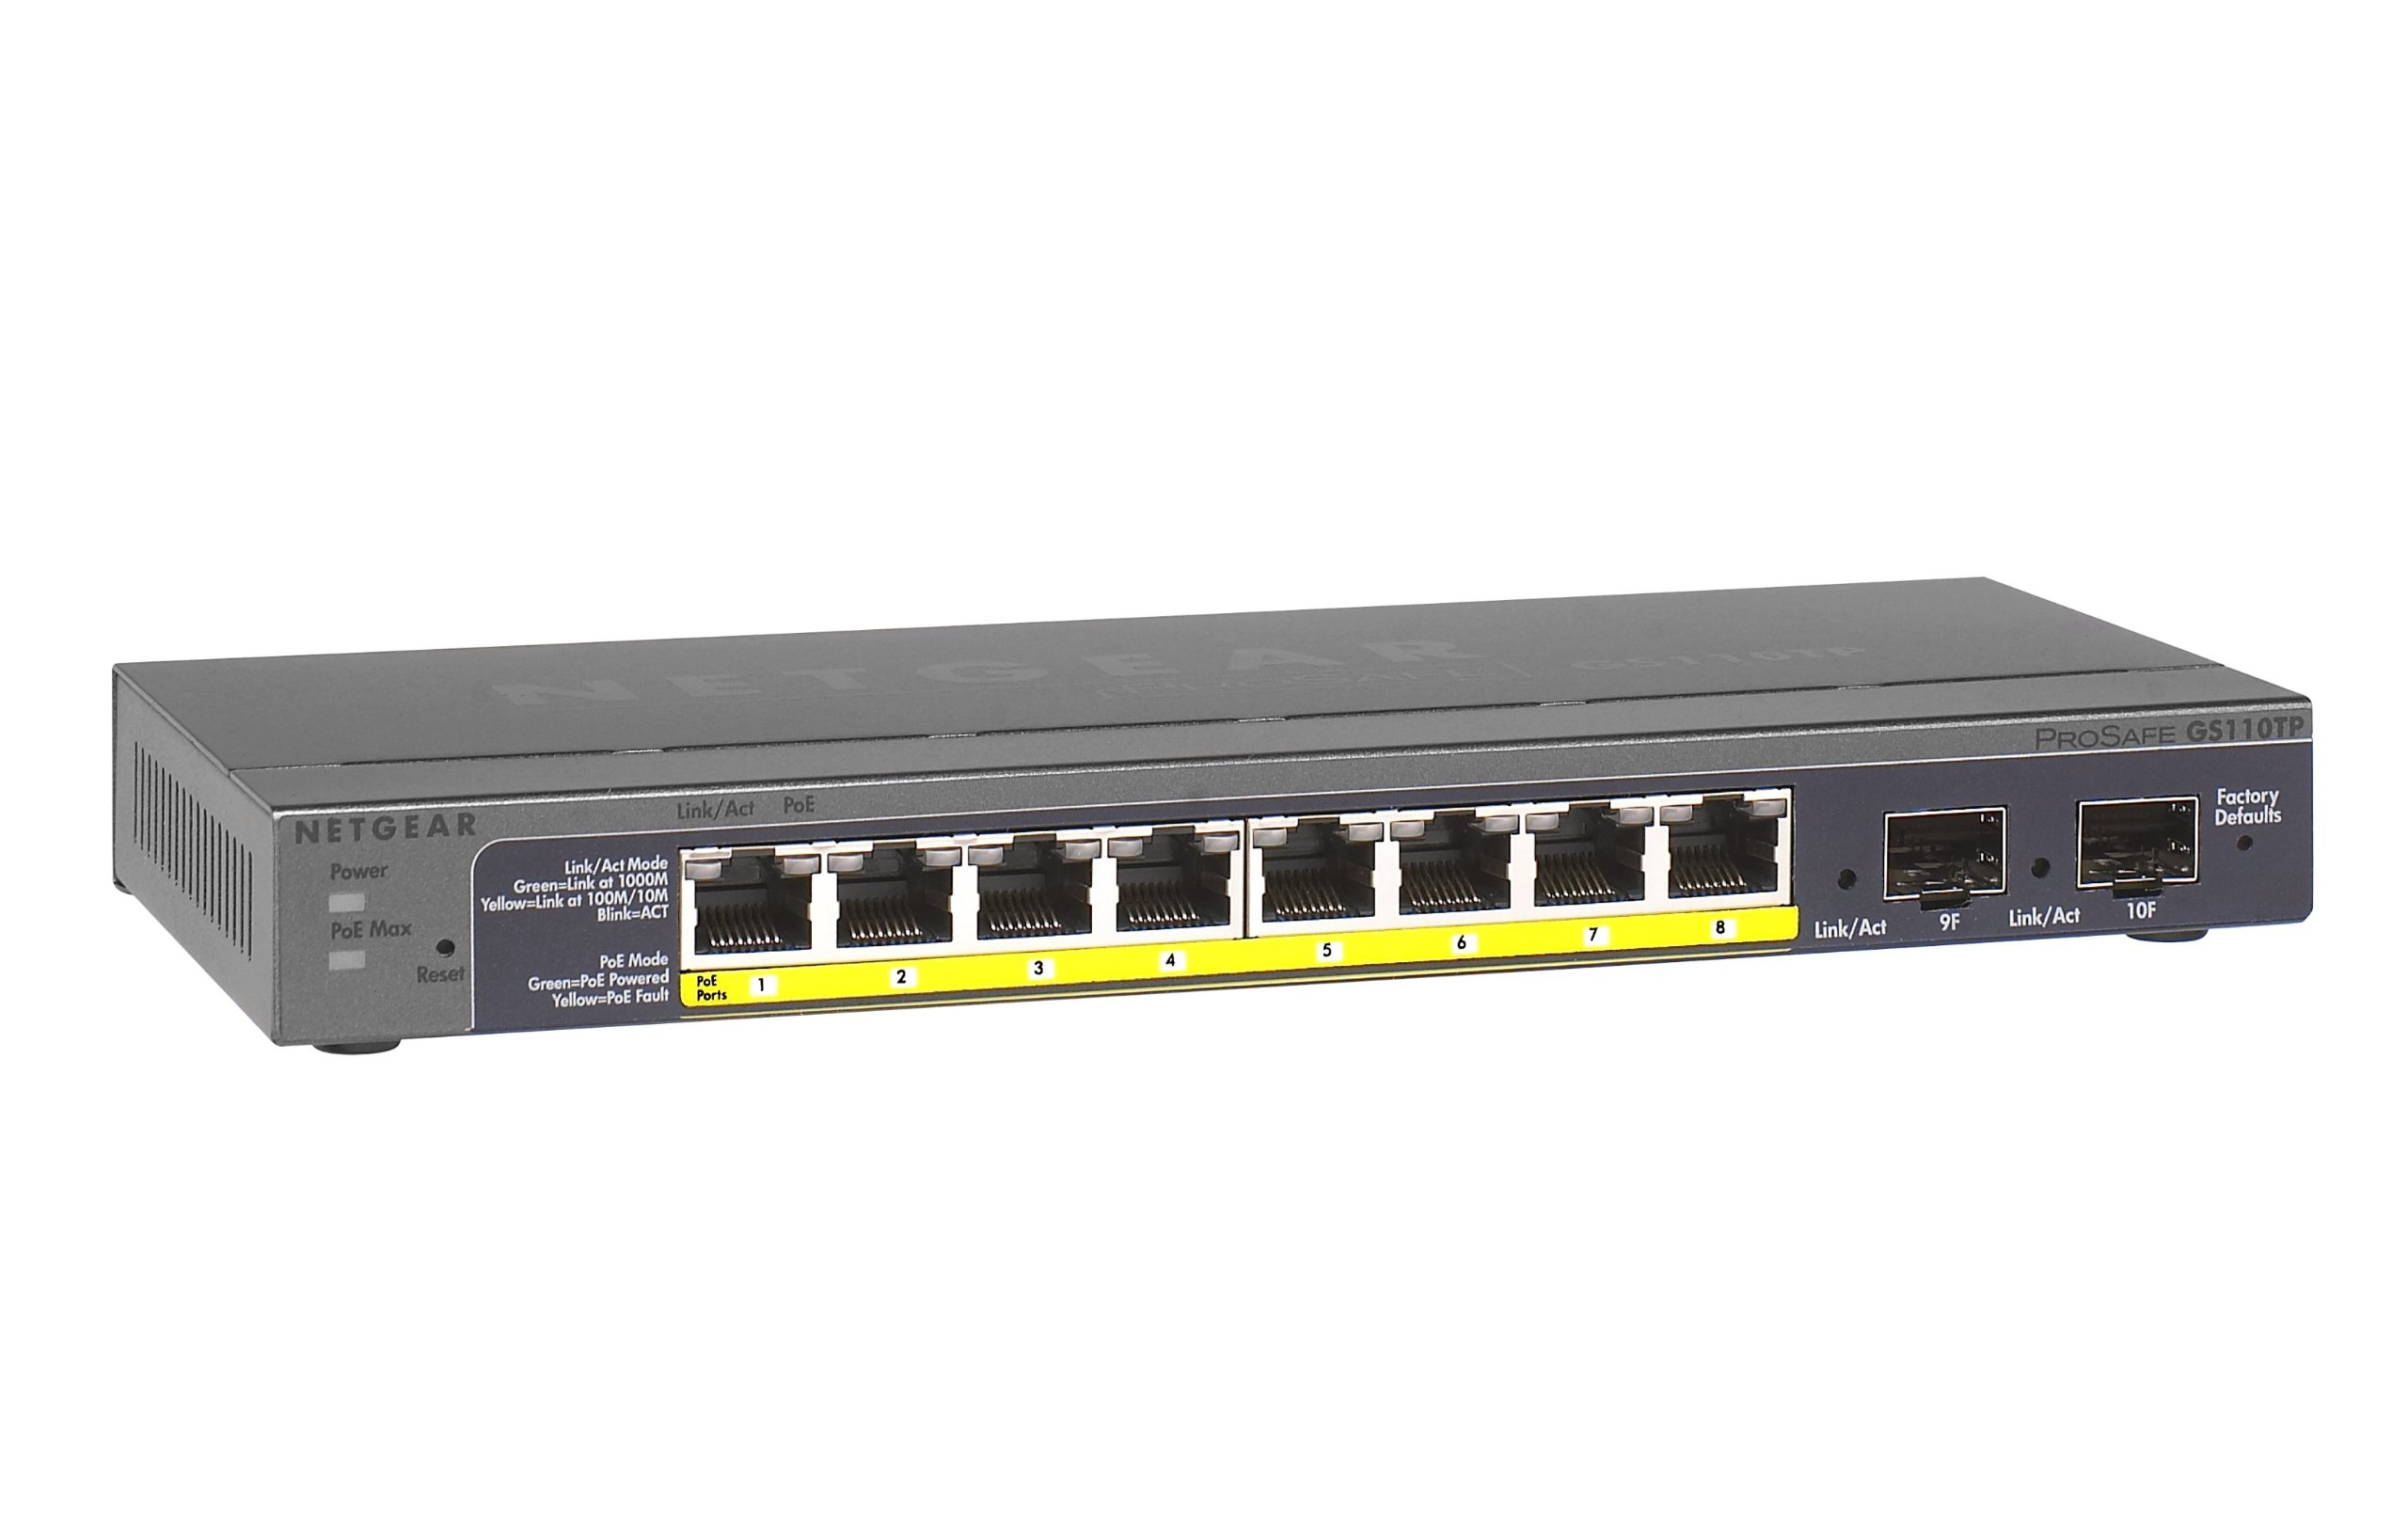 NETGEAR 8-Port Gigabit Smart Managed Pro Switch, 53w, PoE, ProSAFE Lifetime Protection (GS110TPv2) by NETGEAR